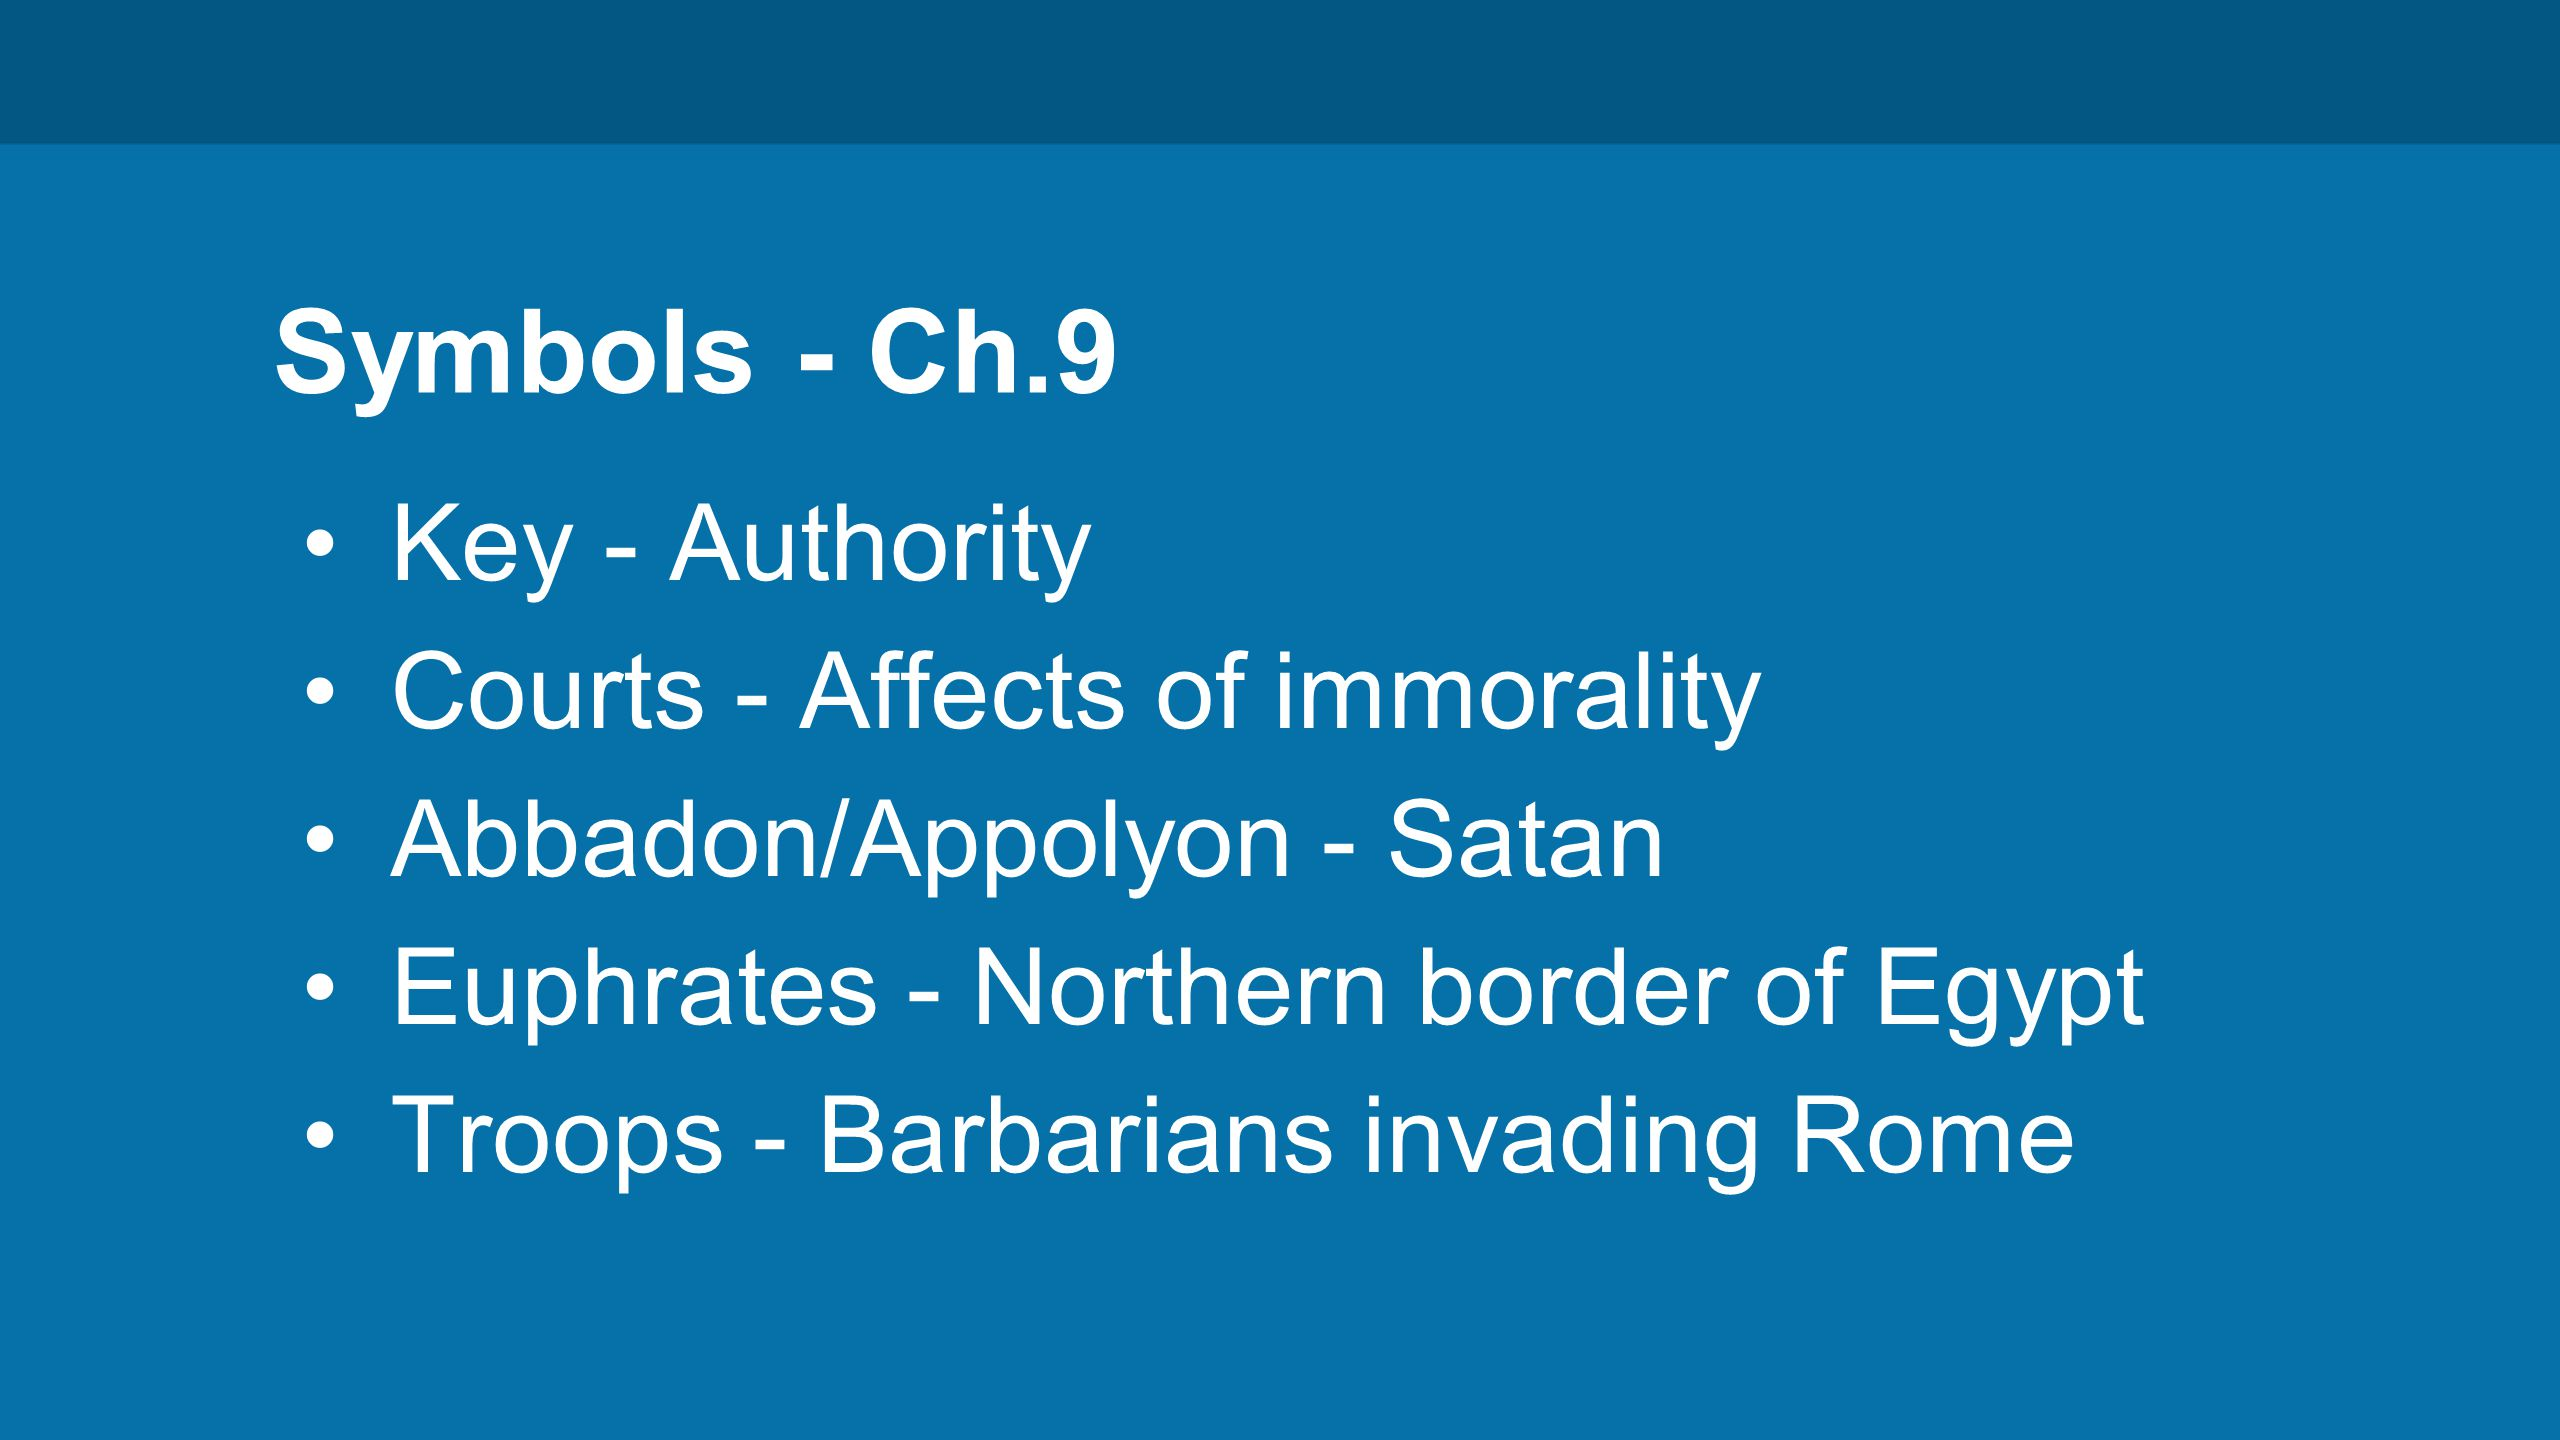 Symbols - Ch.9 Key - Authority Courts - Affects of immorality Abbadon/Appolyon - Satan Euphrates - Northern border of Egypt Troops - Barbarians invading Rome